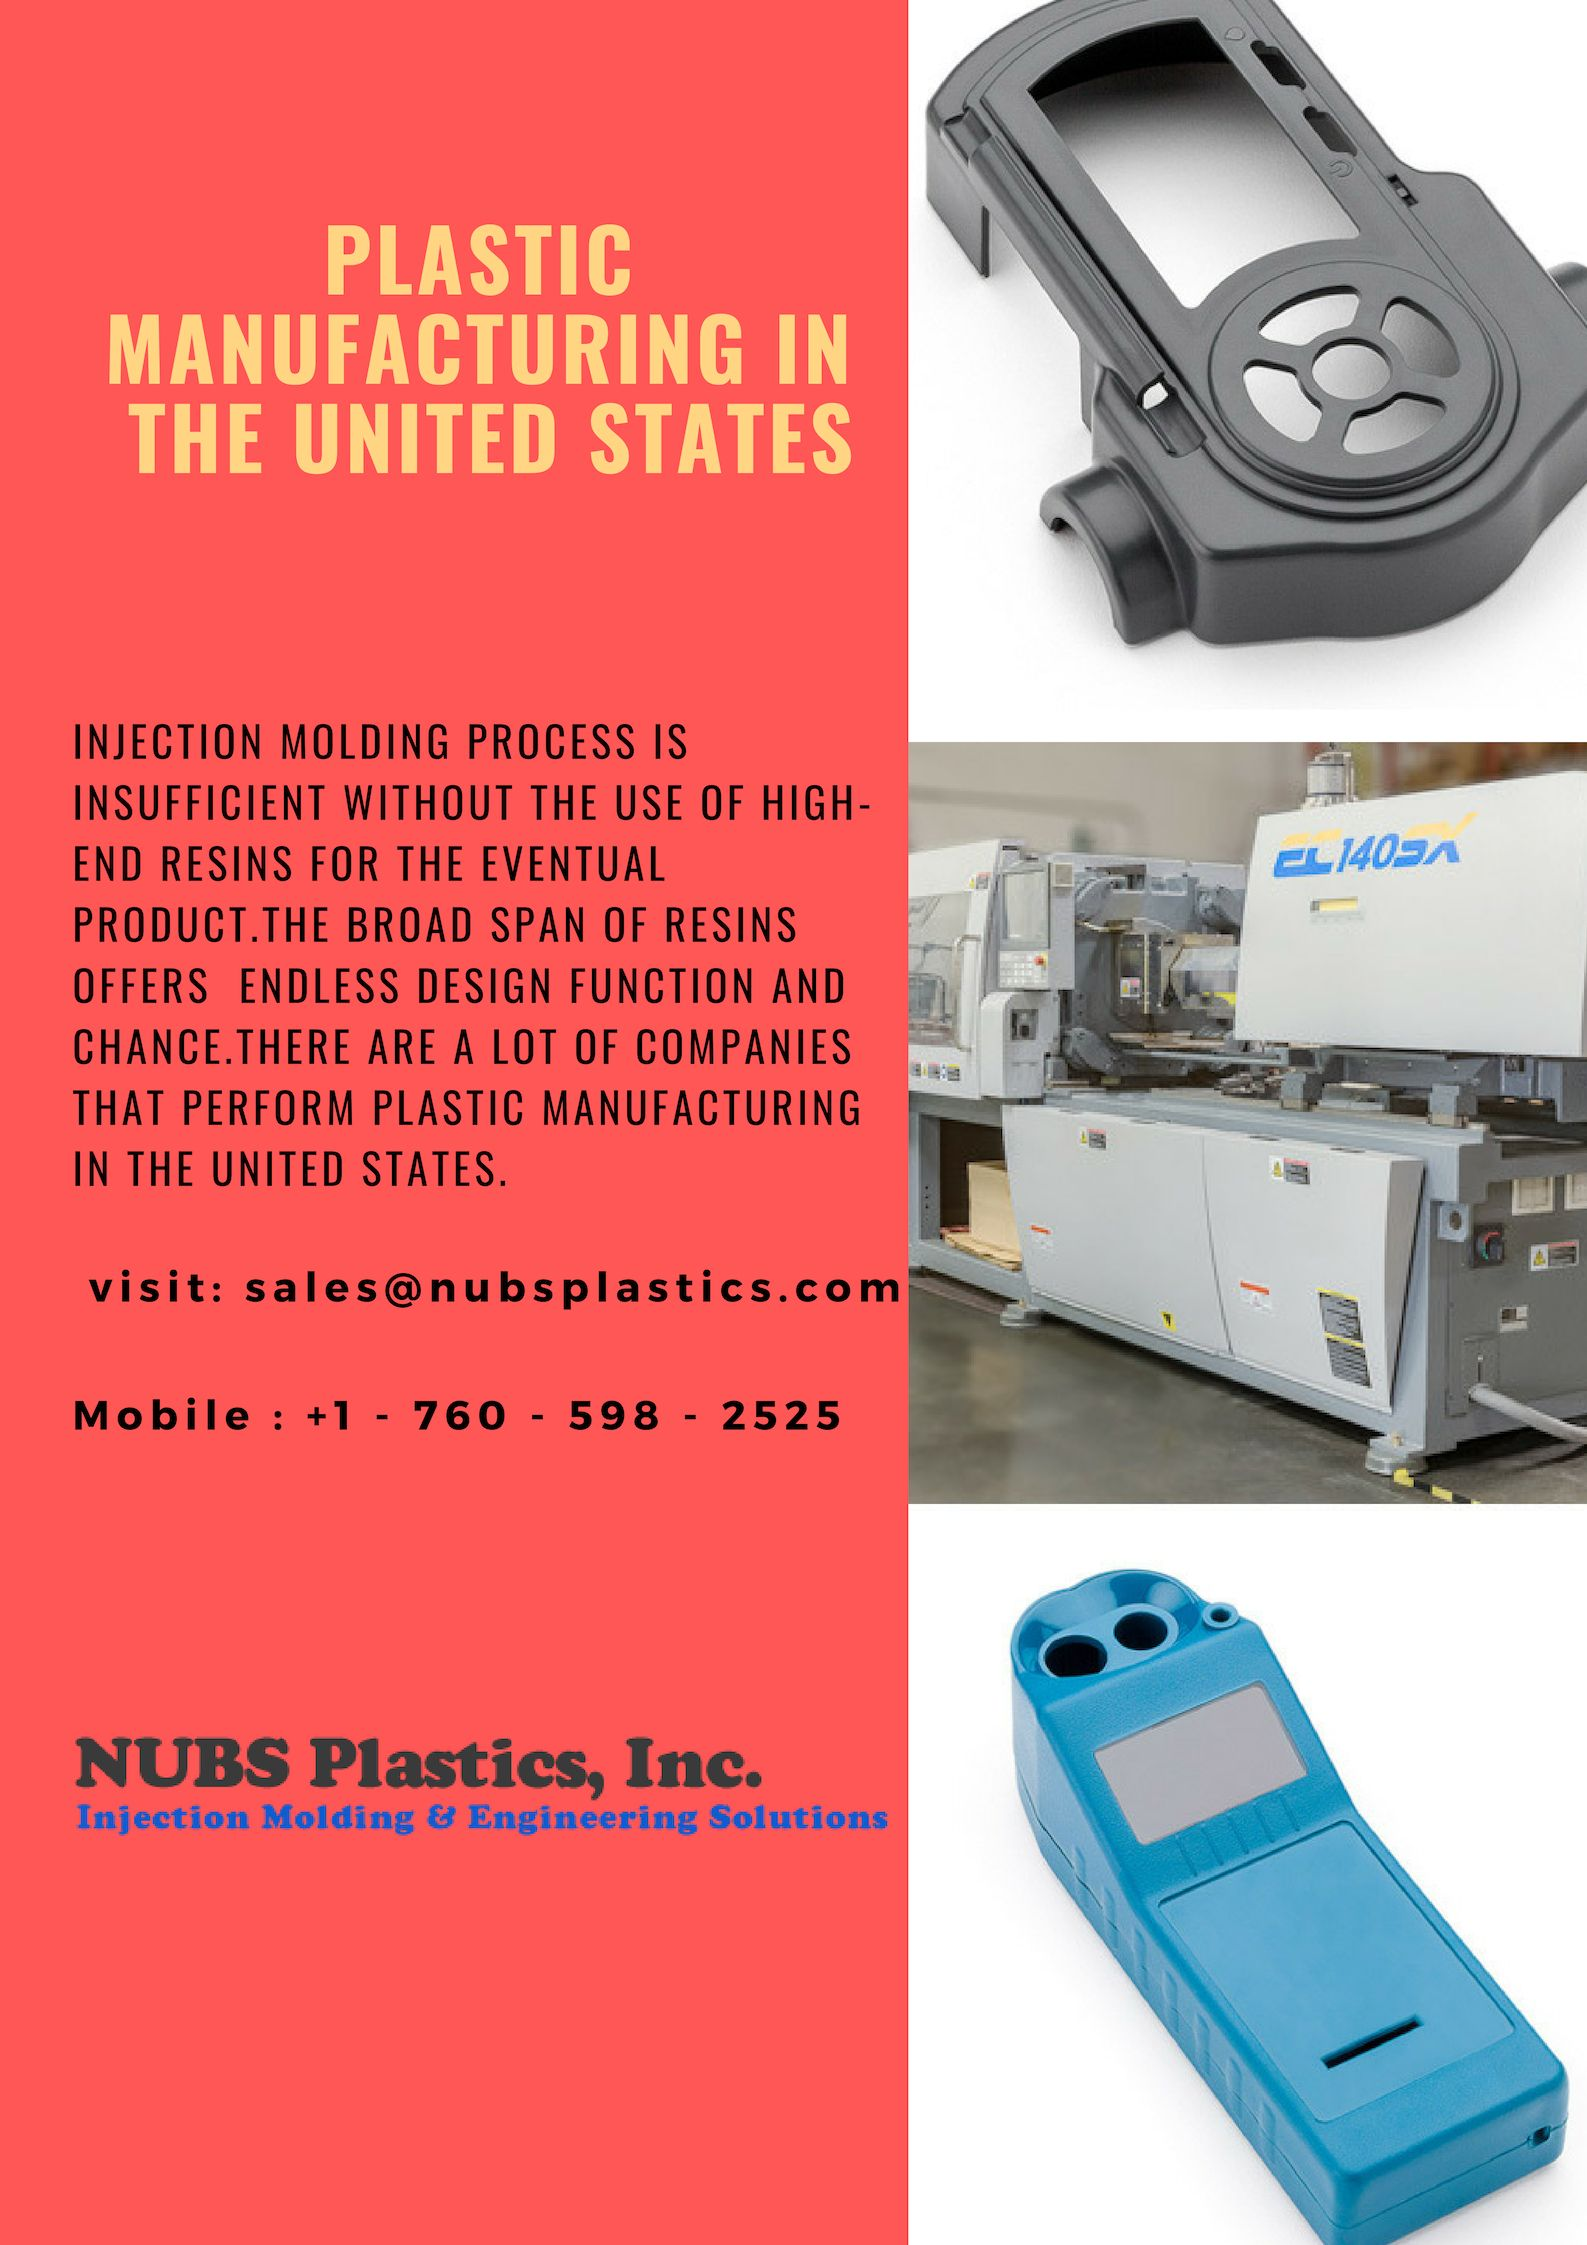 Injection molding process is insufficient without the use of